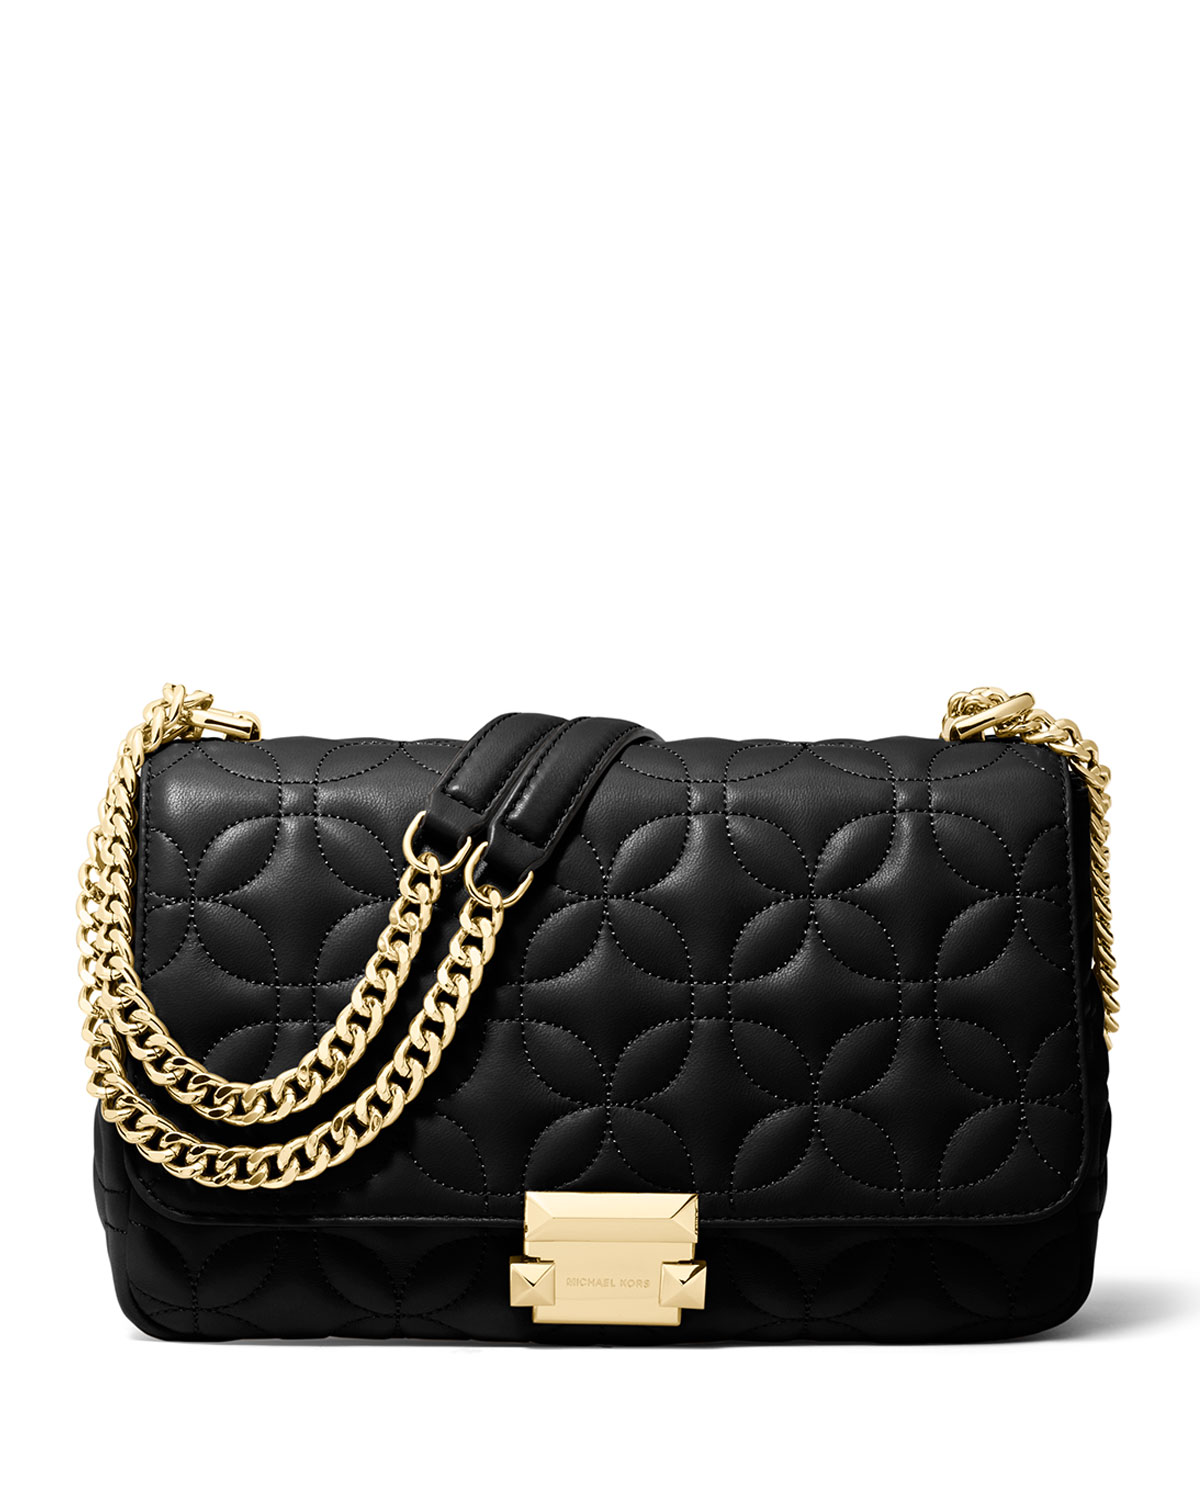 michael michael kors sloan large quilted leather chain shoulder bag rh neimanmarcus com michael kors sloan lg leather chain shoulder bag black michael kors sloan medium leather shoulder bag